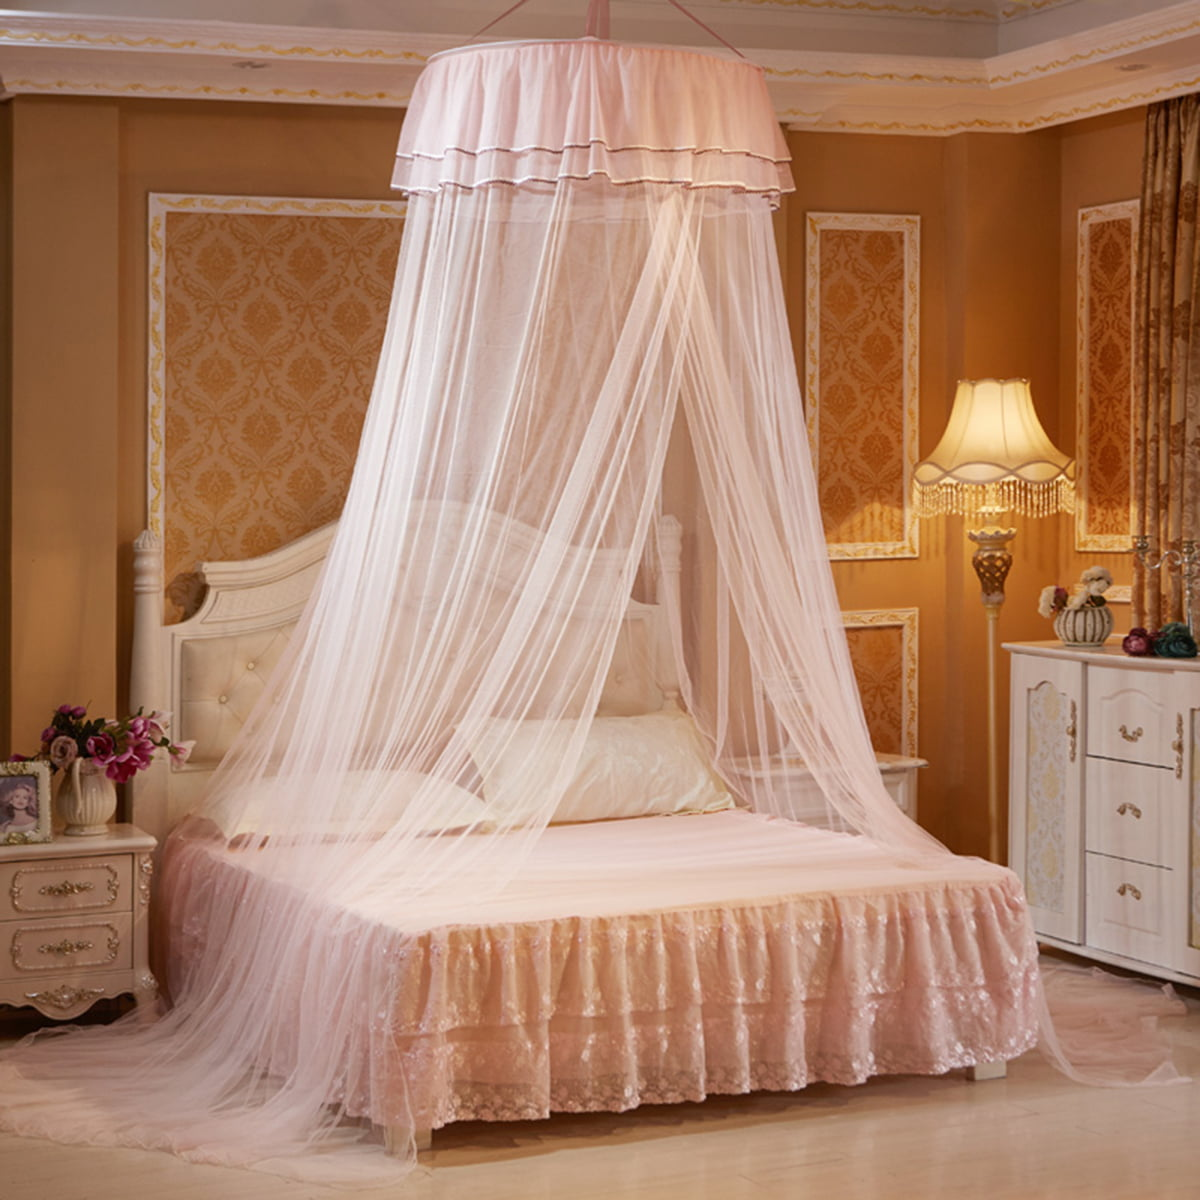 4 Post Hanging Bed Canopy Curtain Netting Fine Mesh Mosquito Net for Summer